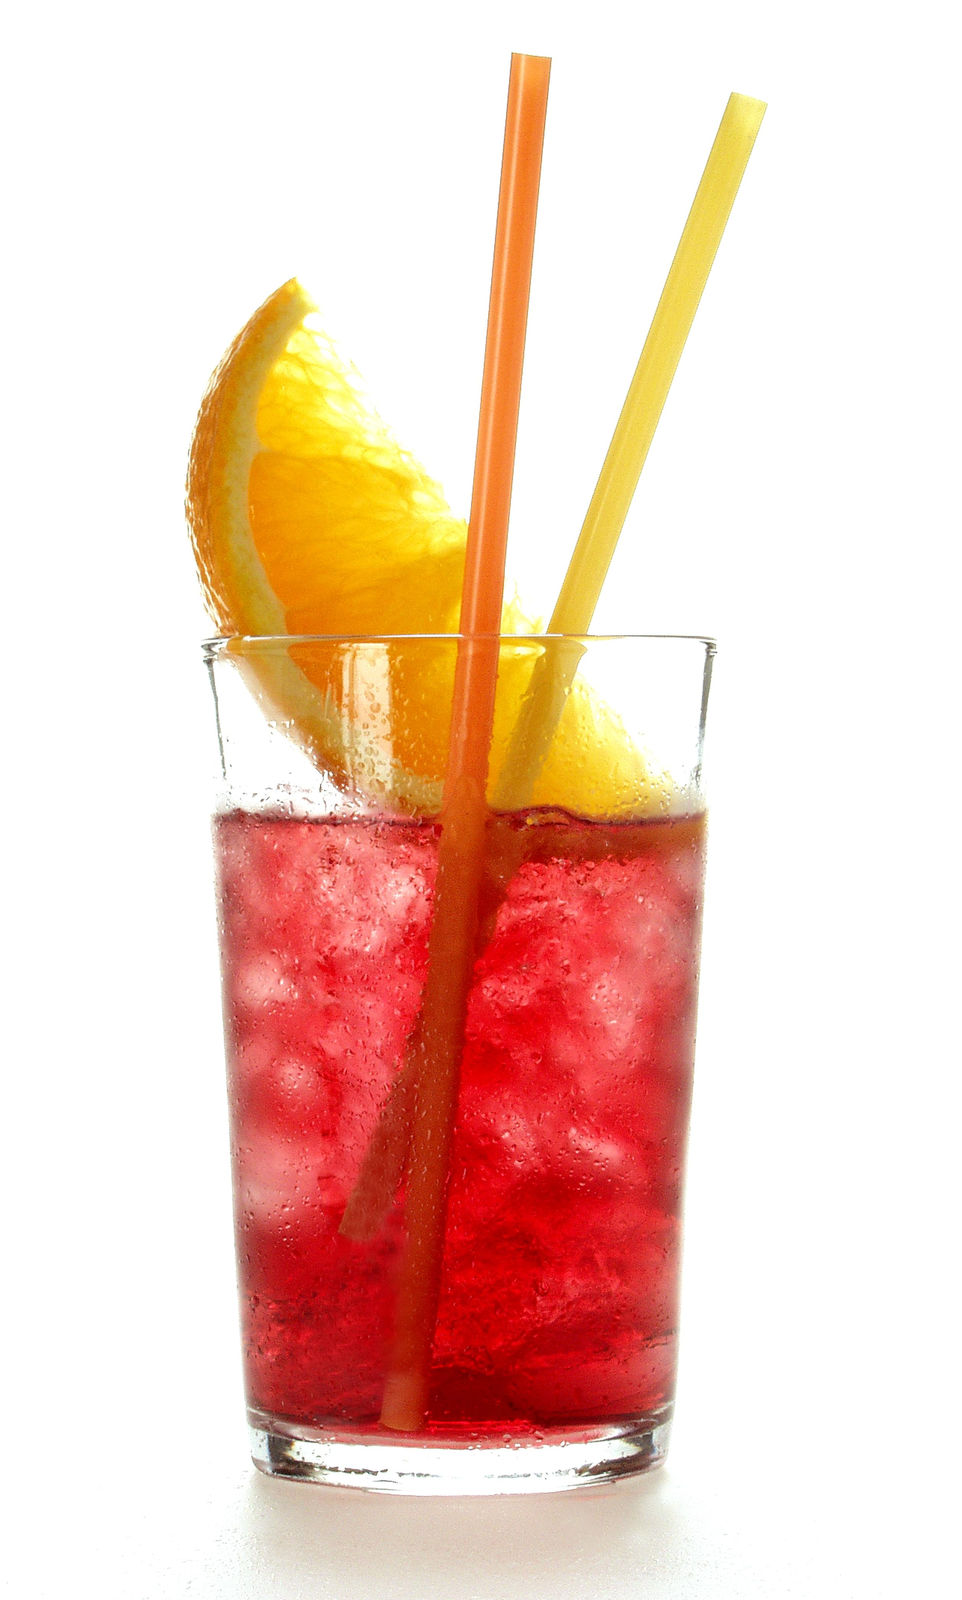 Cocktail limo-grenade